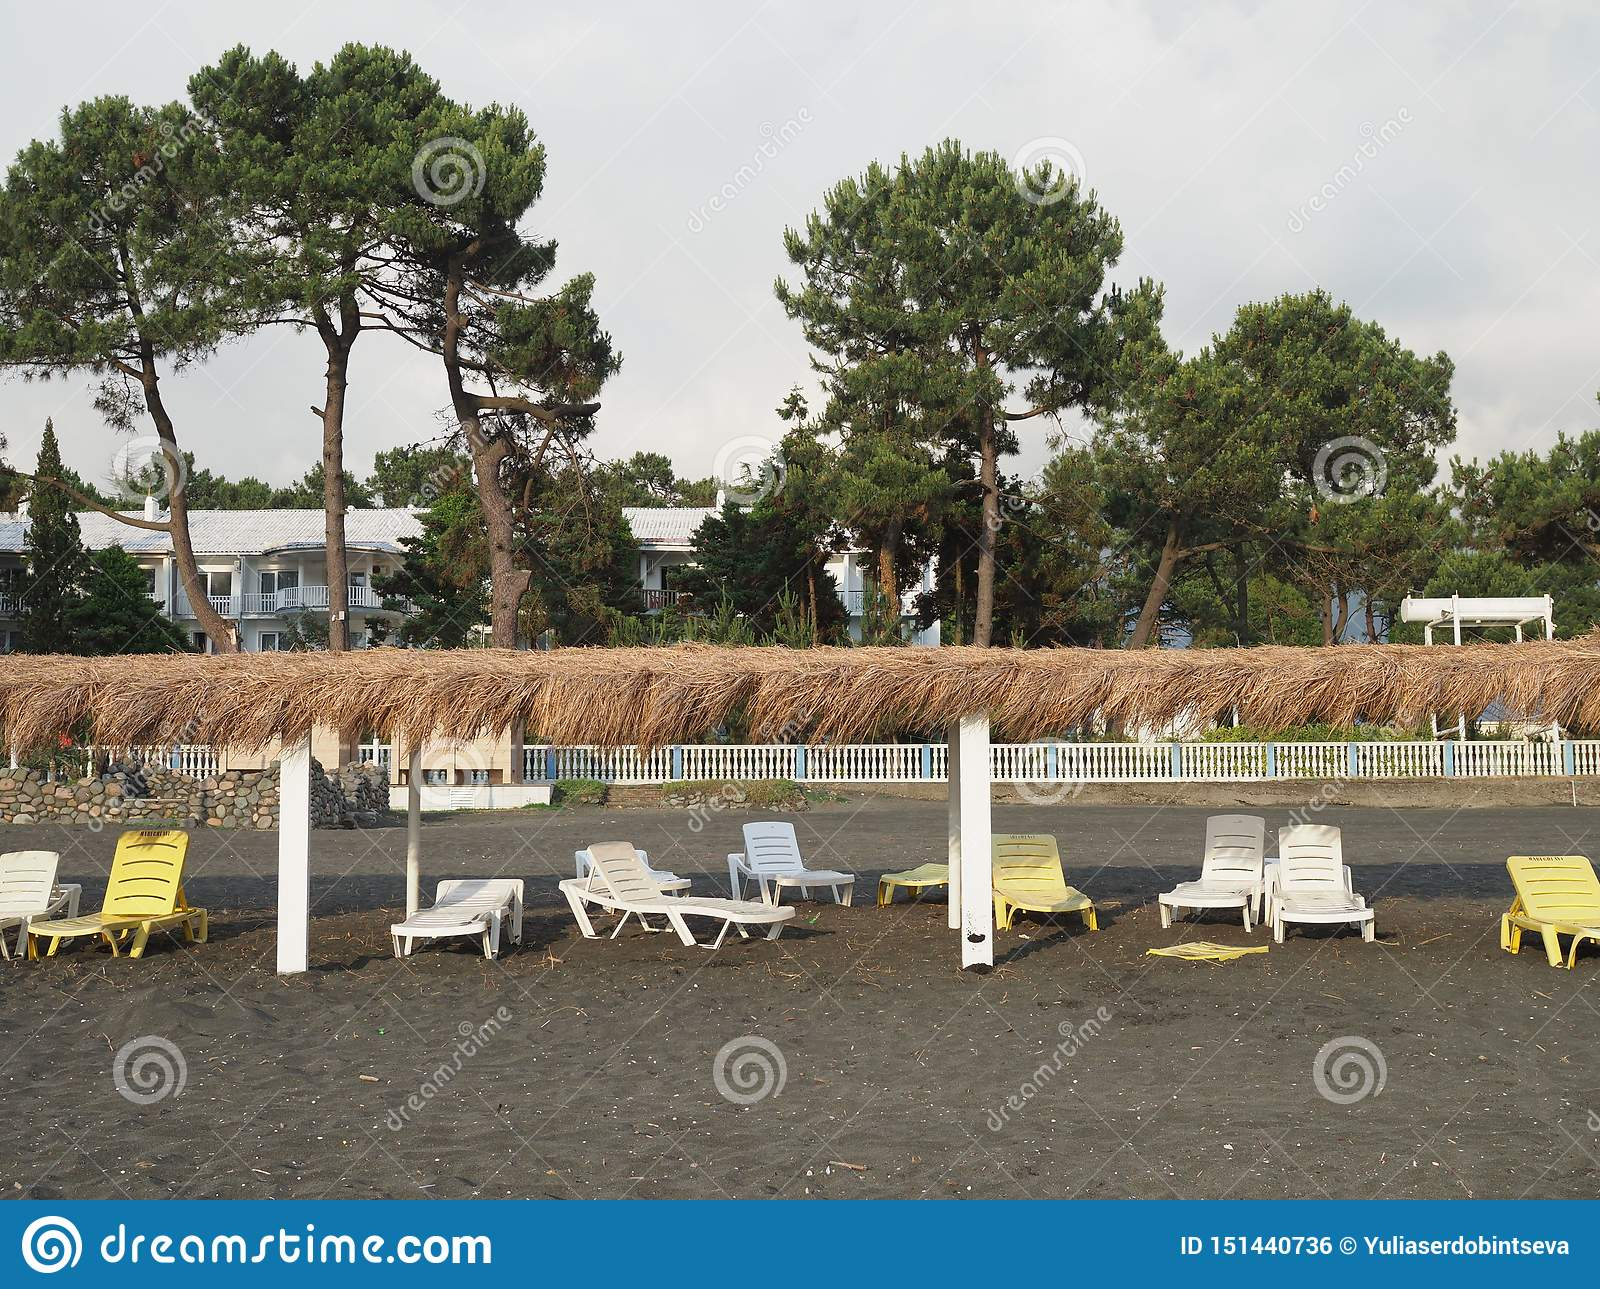 Summer, sun, deserted beach of the coast with sun loungers. Beach by the sea with empty deck chairs set in a row